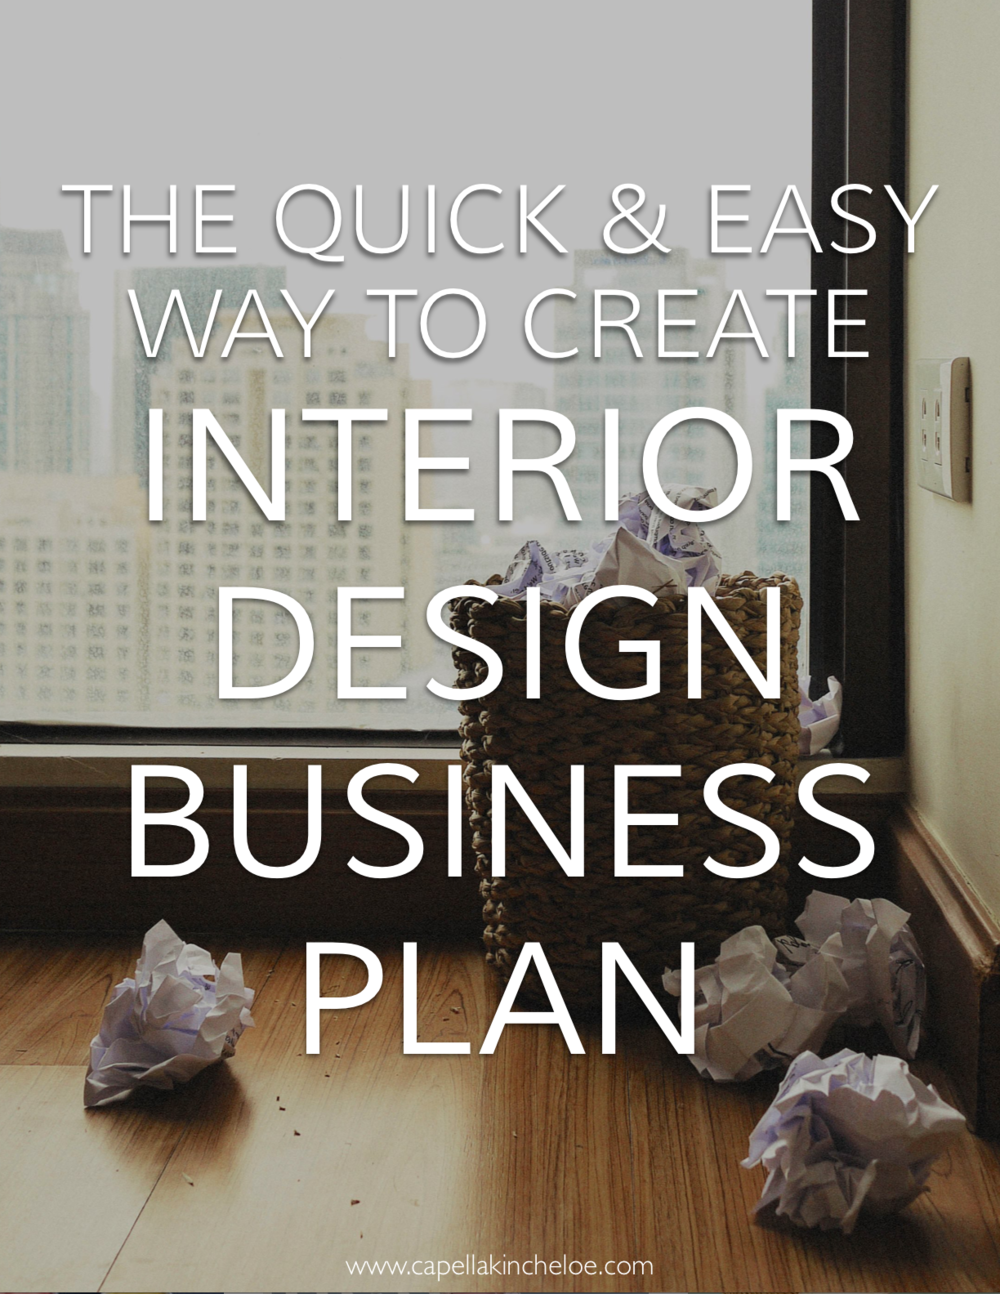 simple business plans for interior designerscapella kincheloe. interior design business plans don't have to be boring multipage ordeals